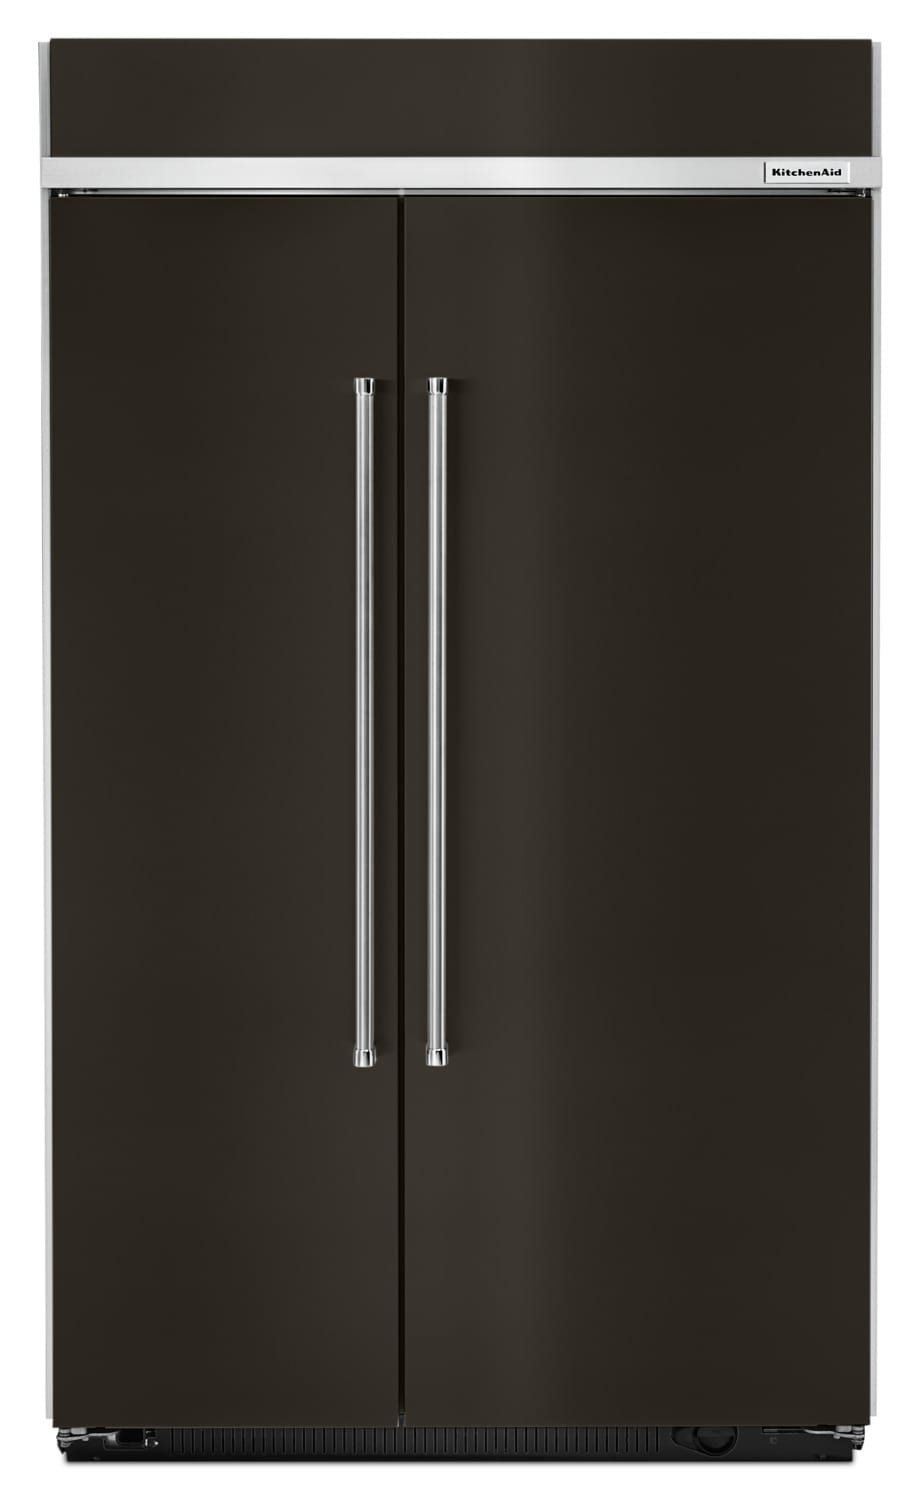 KitchenAid Black Stainless Steel Side-by-Side Refrigerator (30.02 Cu. ft) - KBSN608EBS